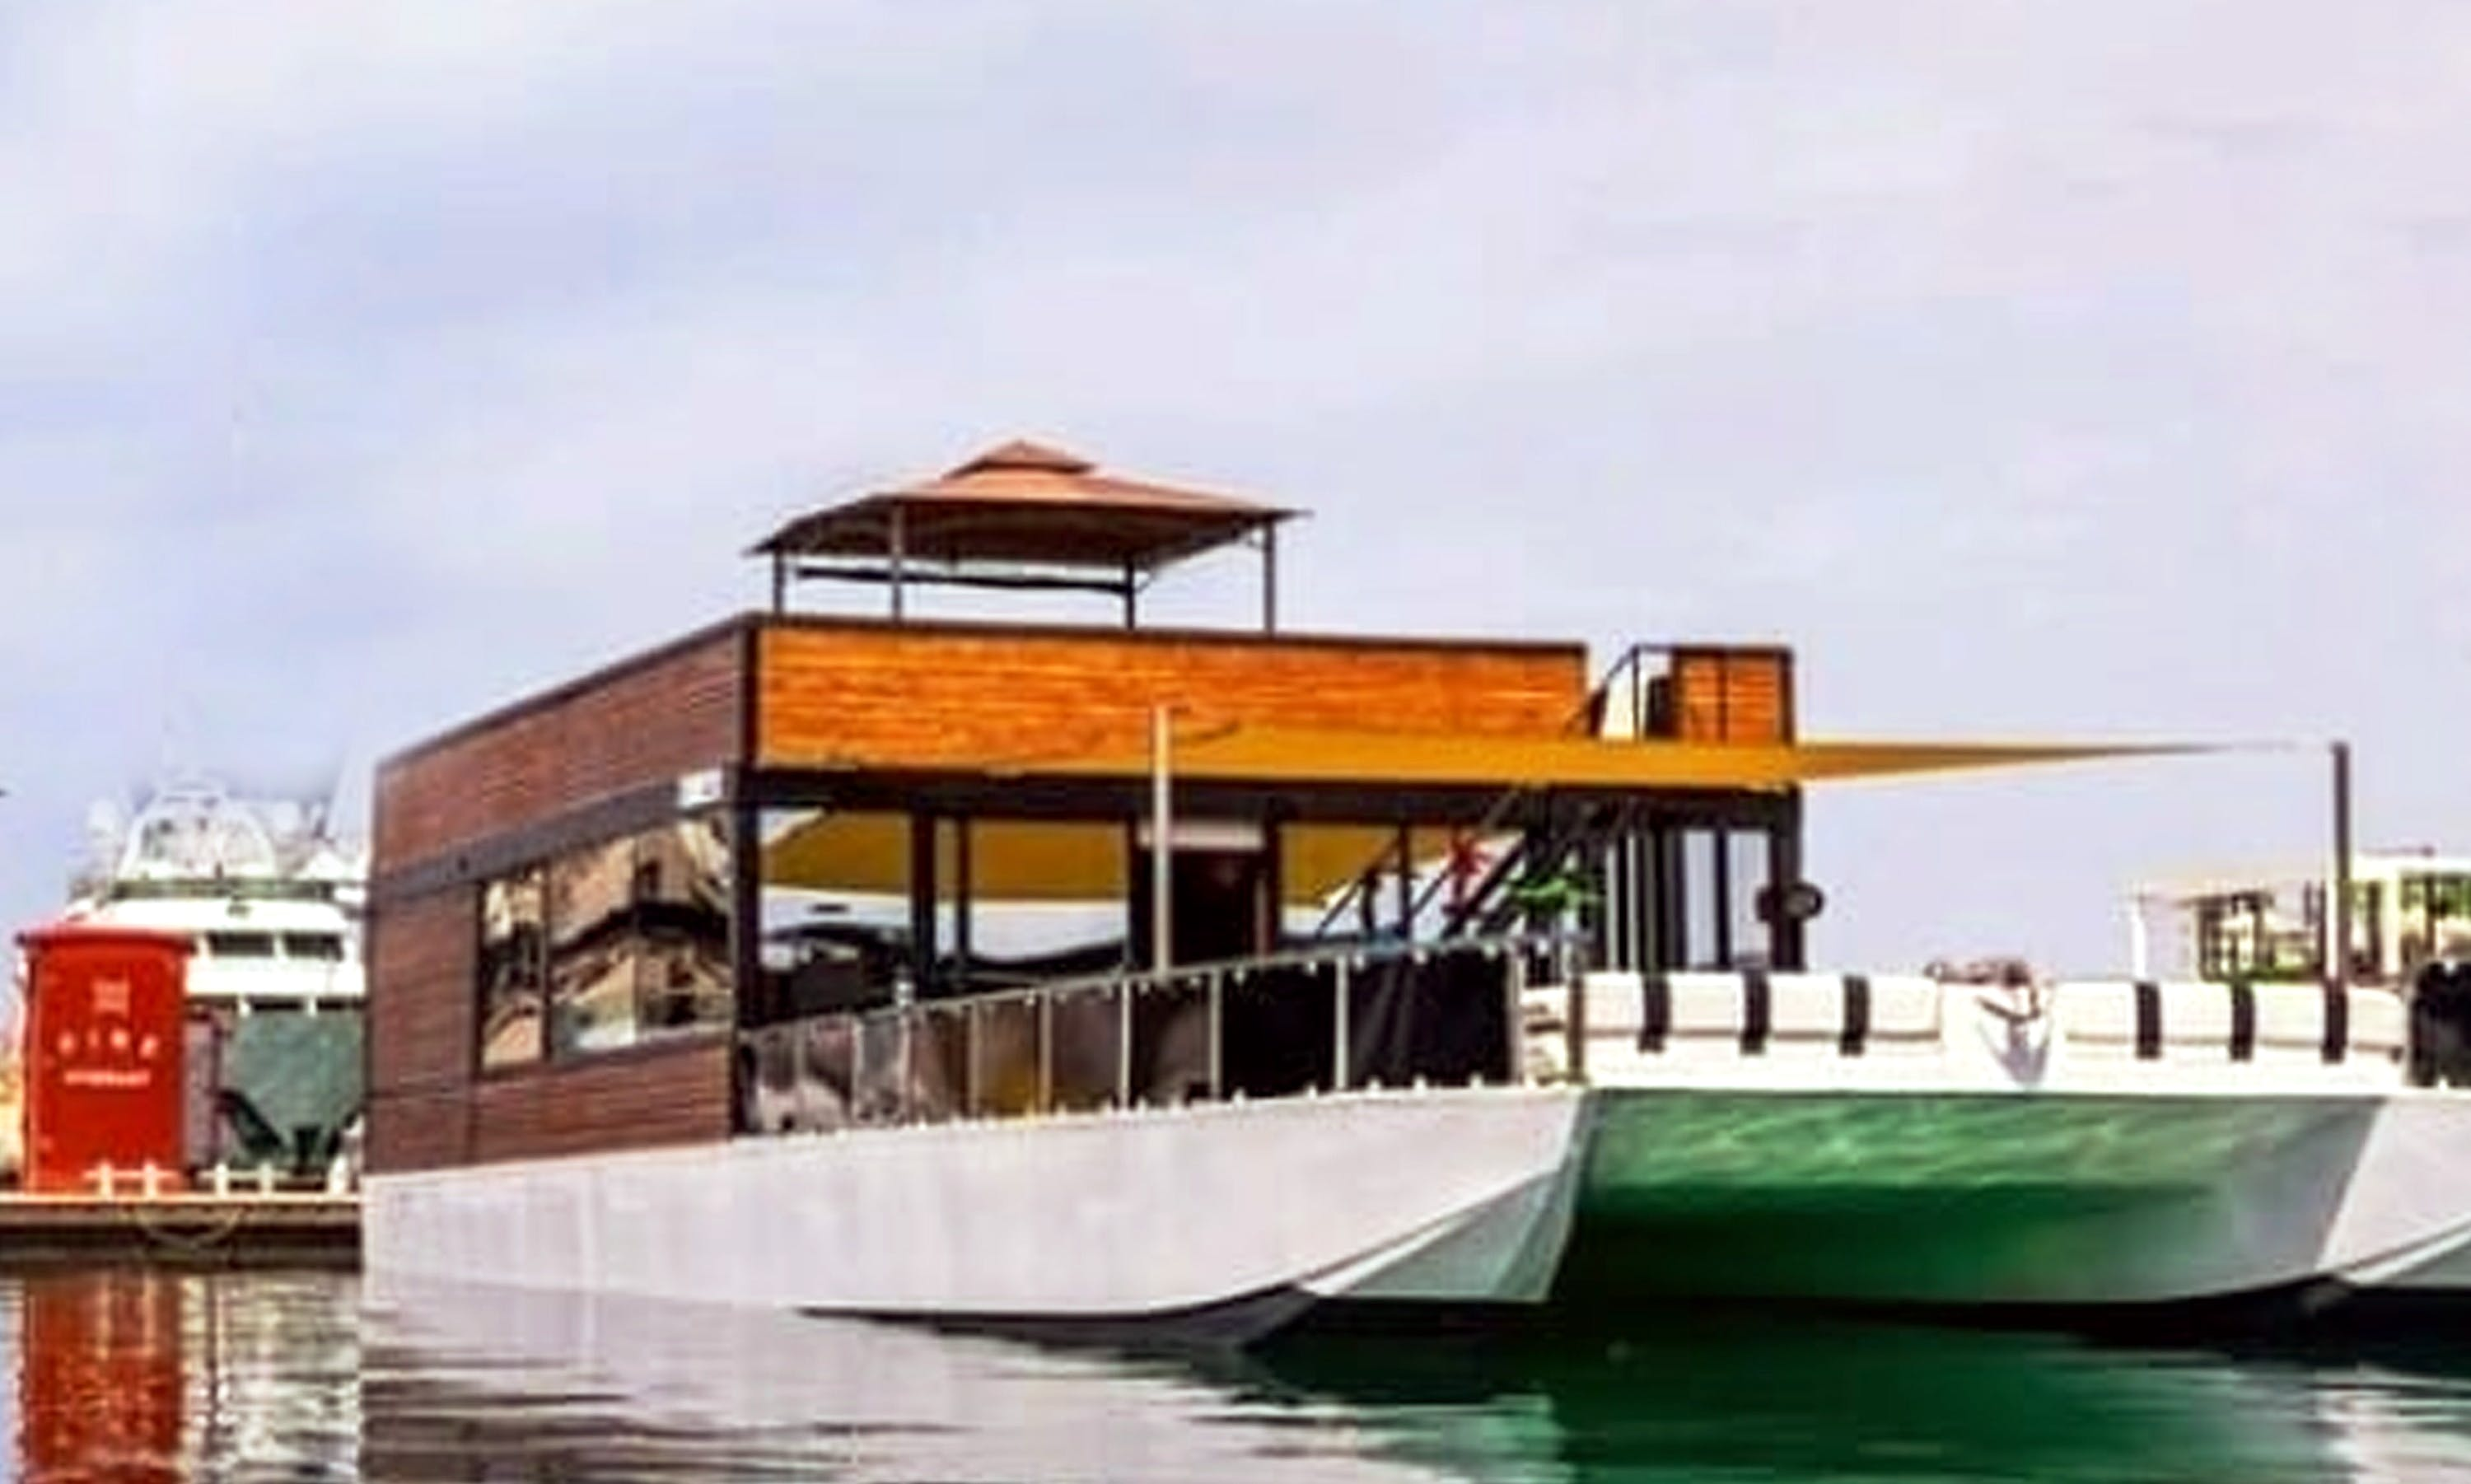 Party Yacht Houseboat On Rentals-24 pax capacity